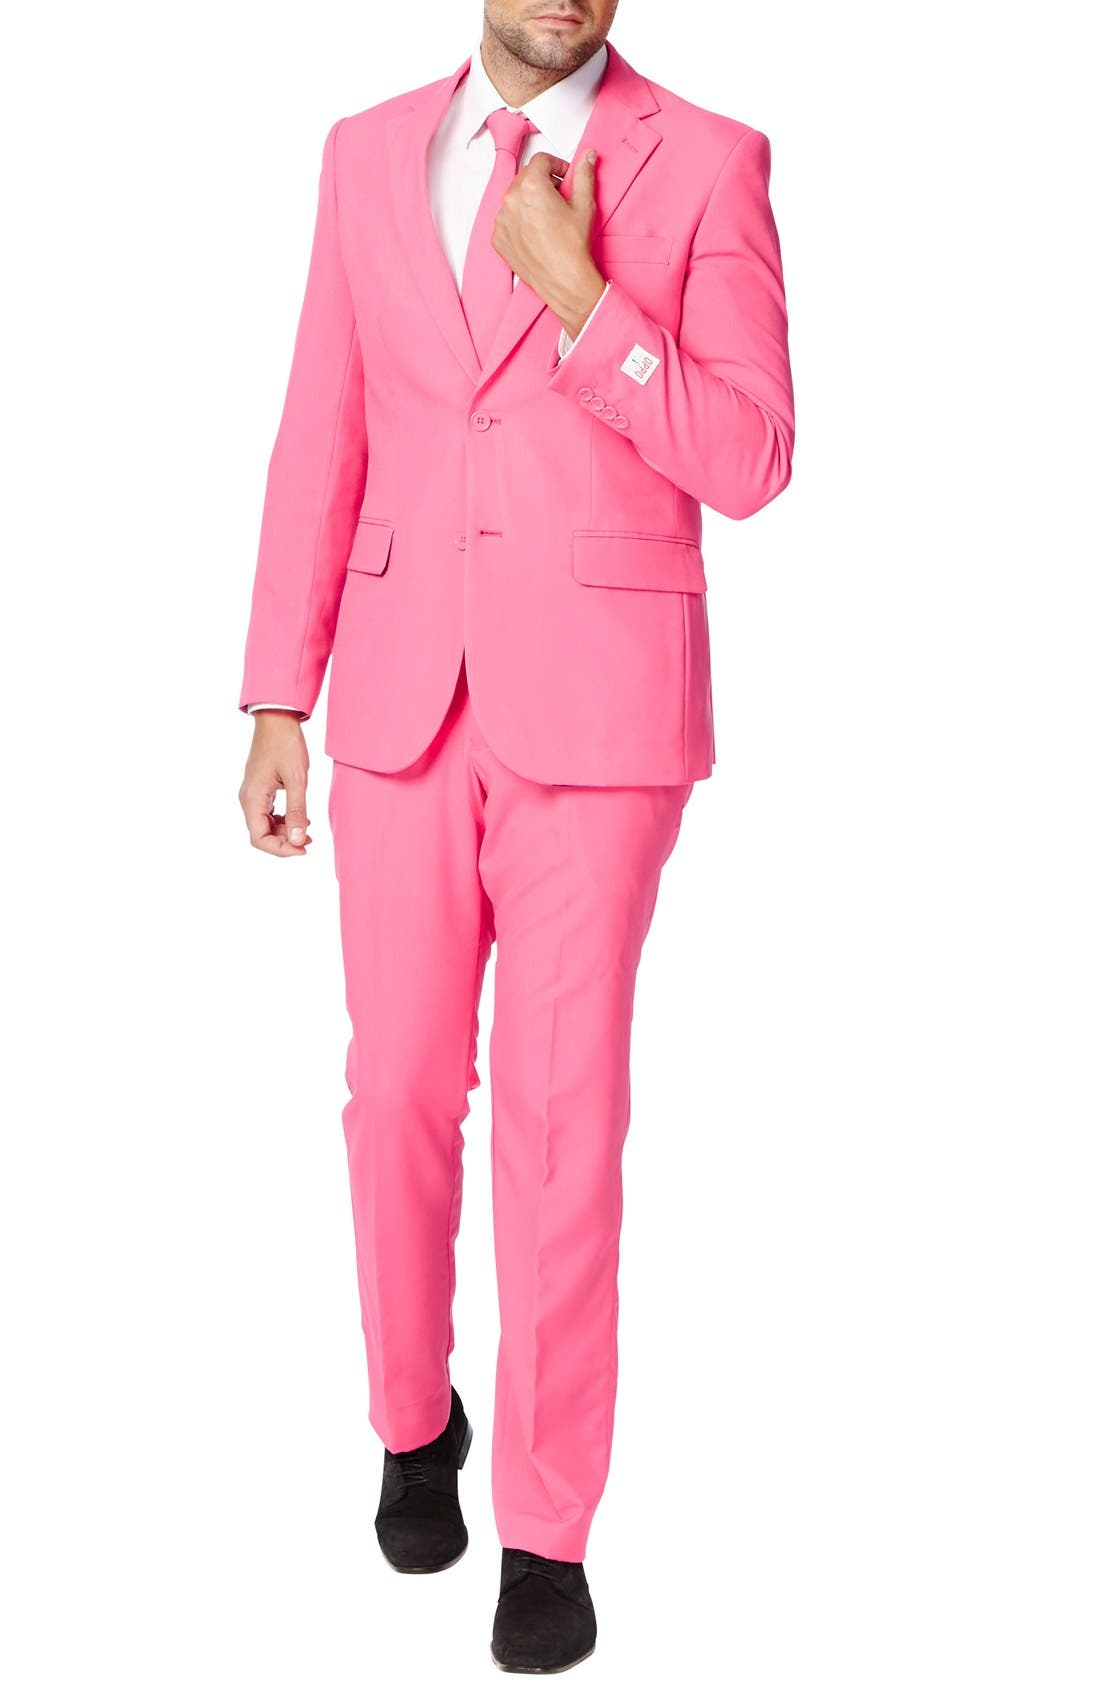 Alternate Image 4  - OppoSuits 'Mr. Pink' Trim Fit Two-Piece Suit with Tie